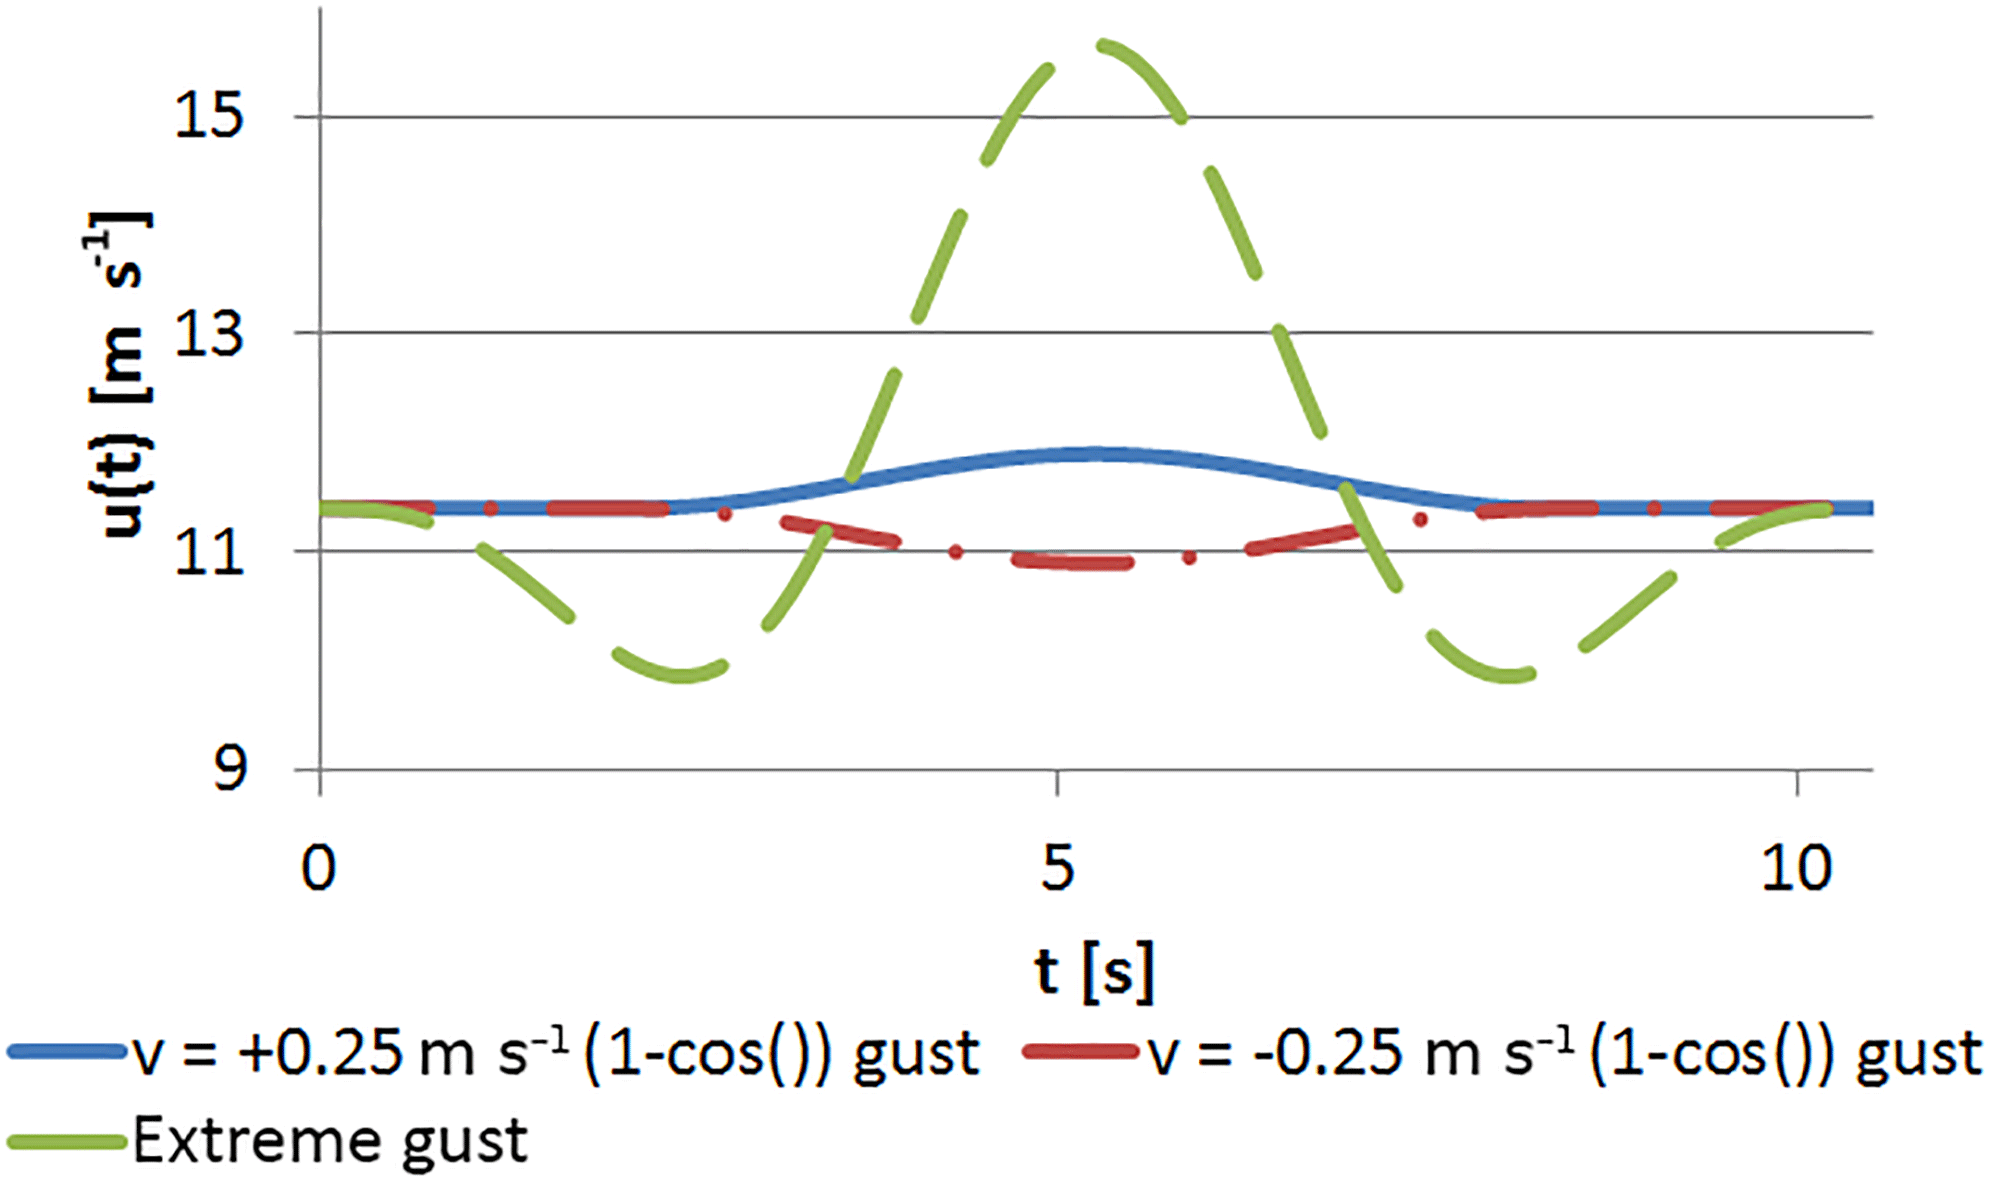 WES - Simulation of transient gusts on the NREL 5 MW wind turbine